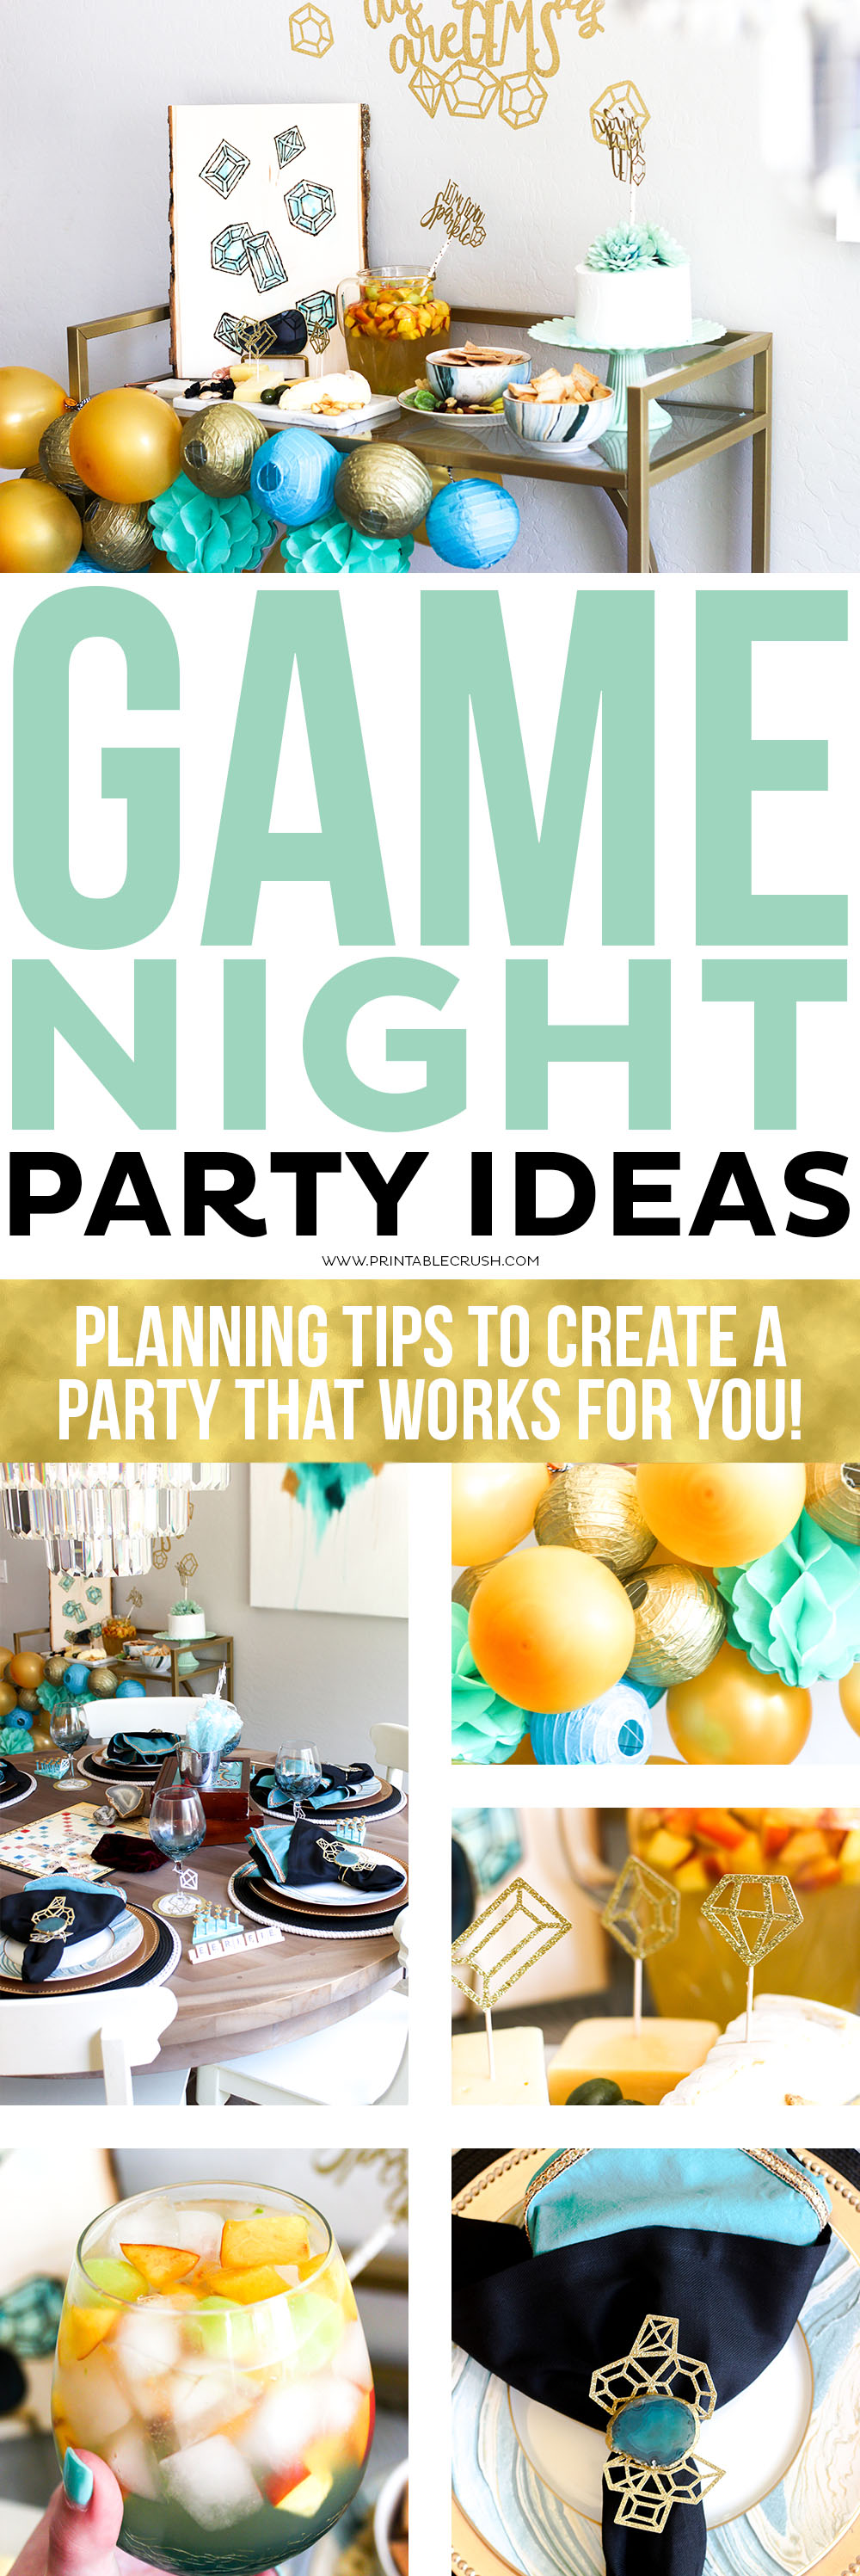 Game Night Party Details and Tutorials - Printable Crush